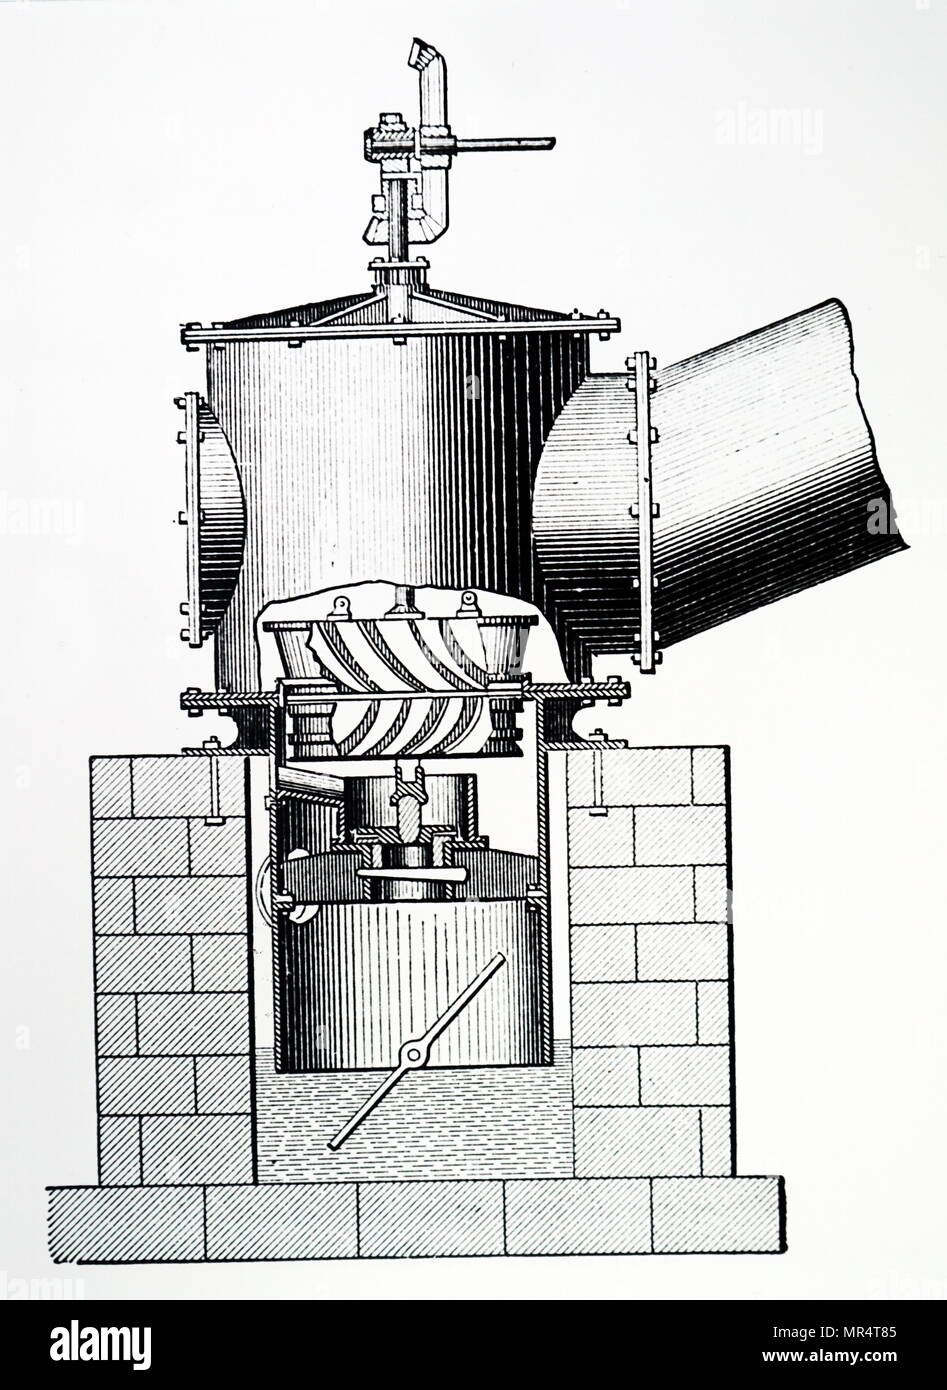 Engraving depicting a Watson's turbine on the Joval (downward flow) principle. Dated 19th century - Stock Image